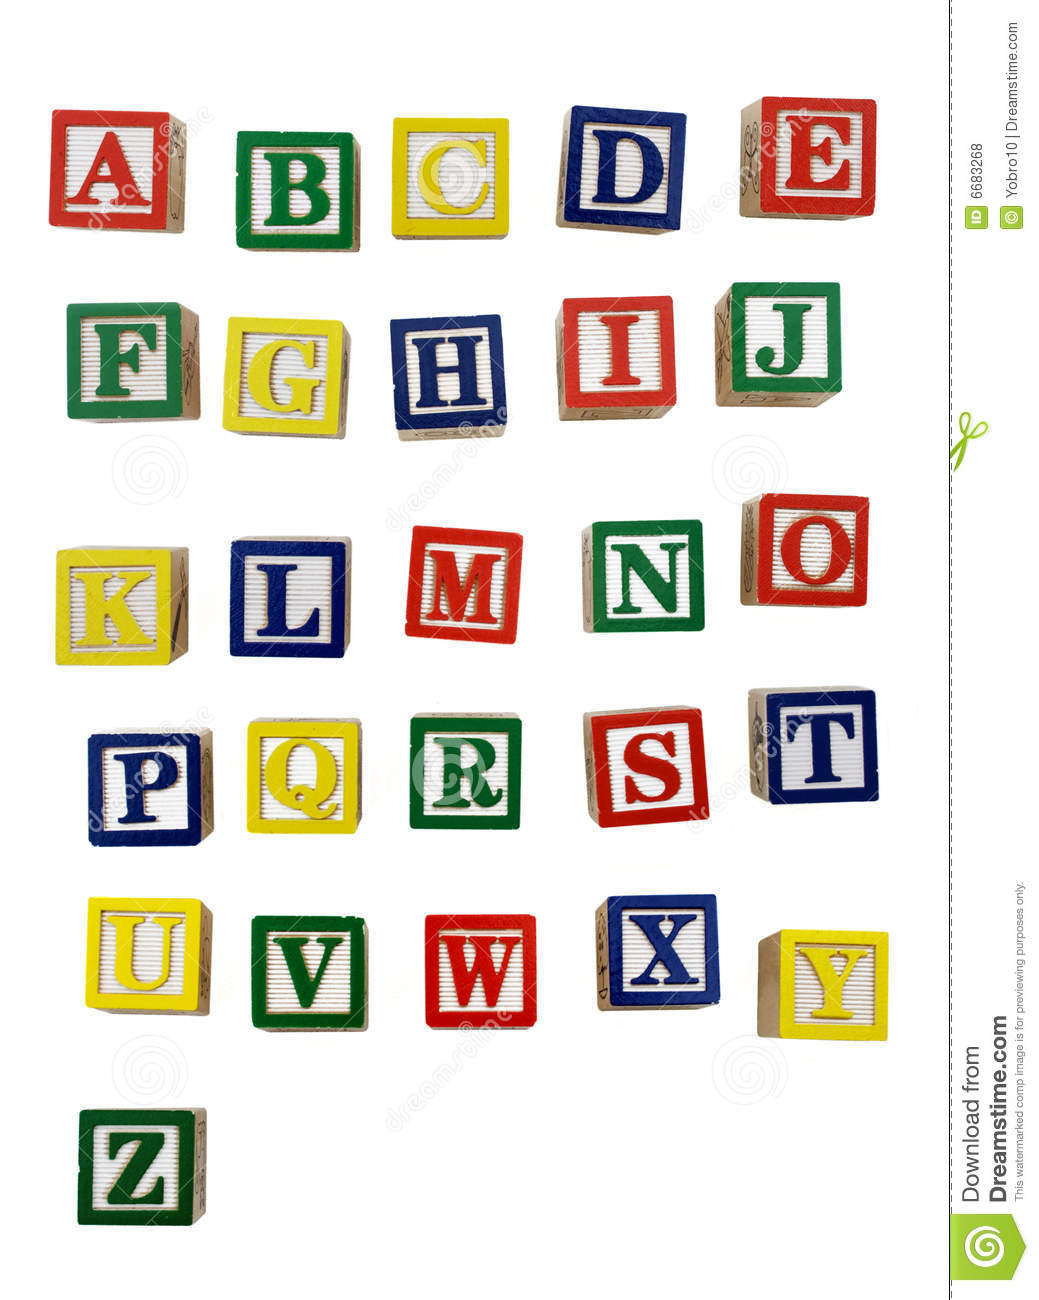 Wood Block Letters Stock Photo Image Of Block Puzzle